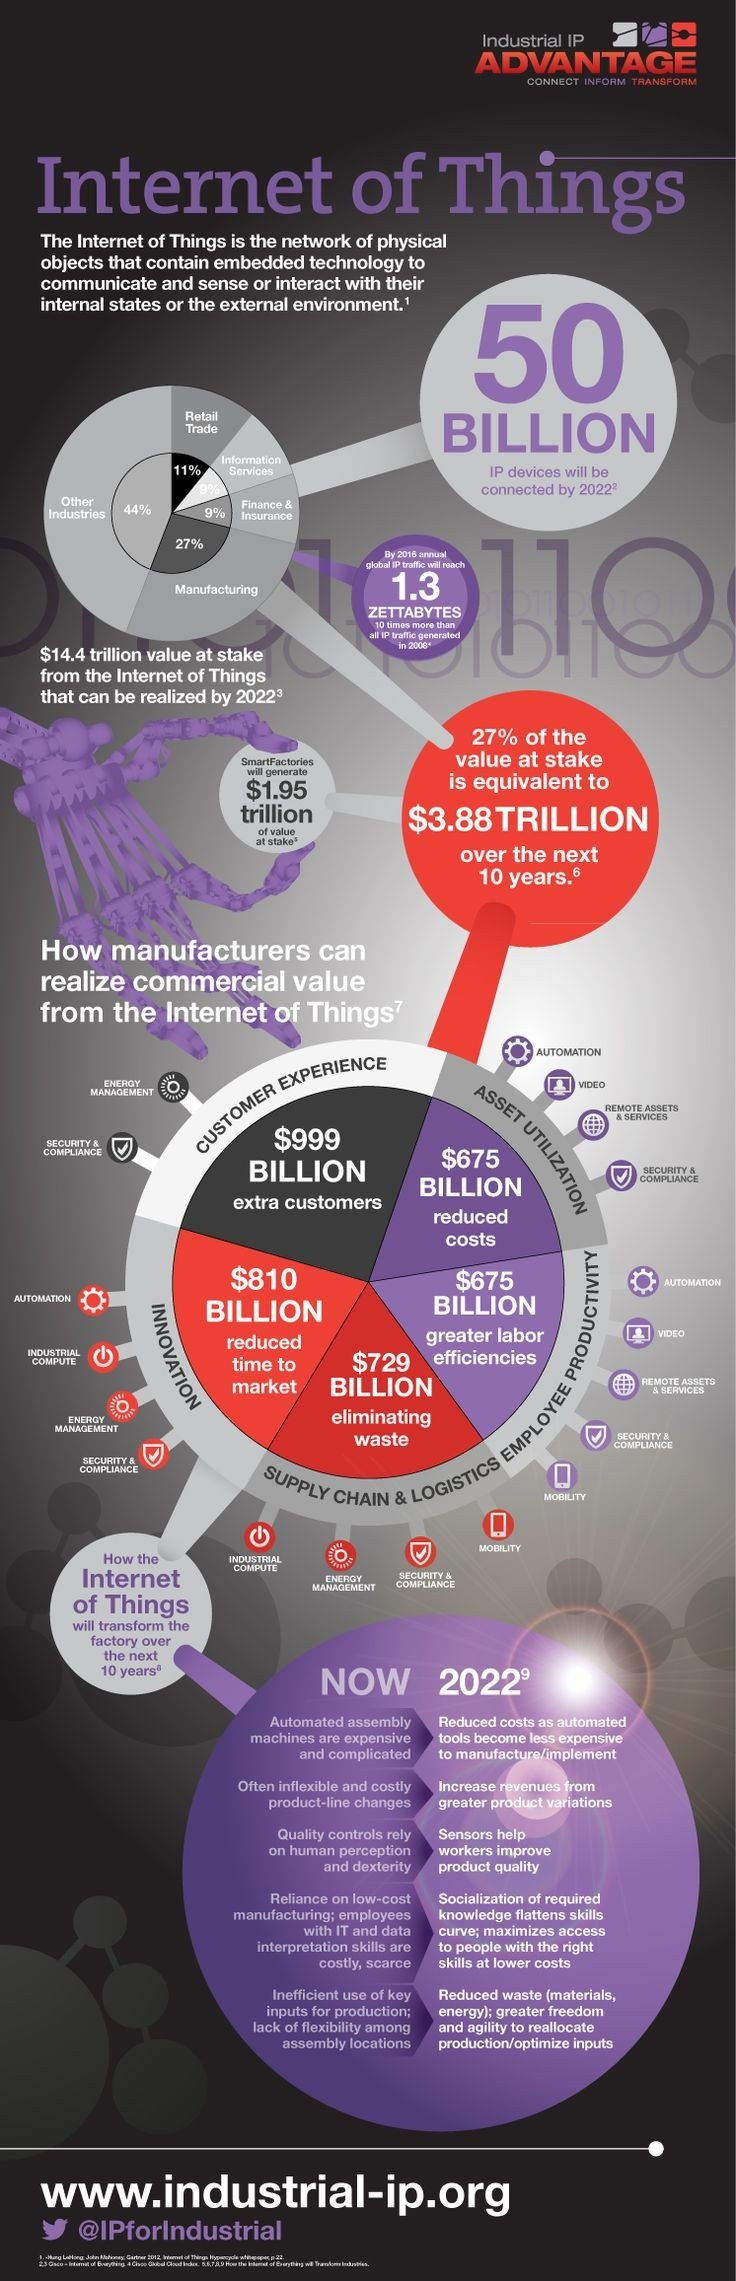 Some facts about the internet of things #IoT #Smart_City #Infographic